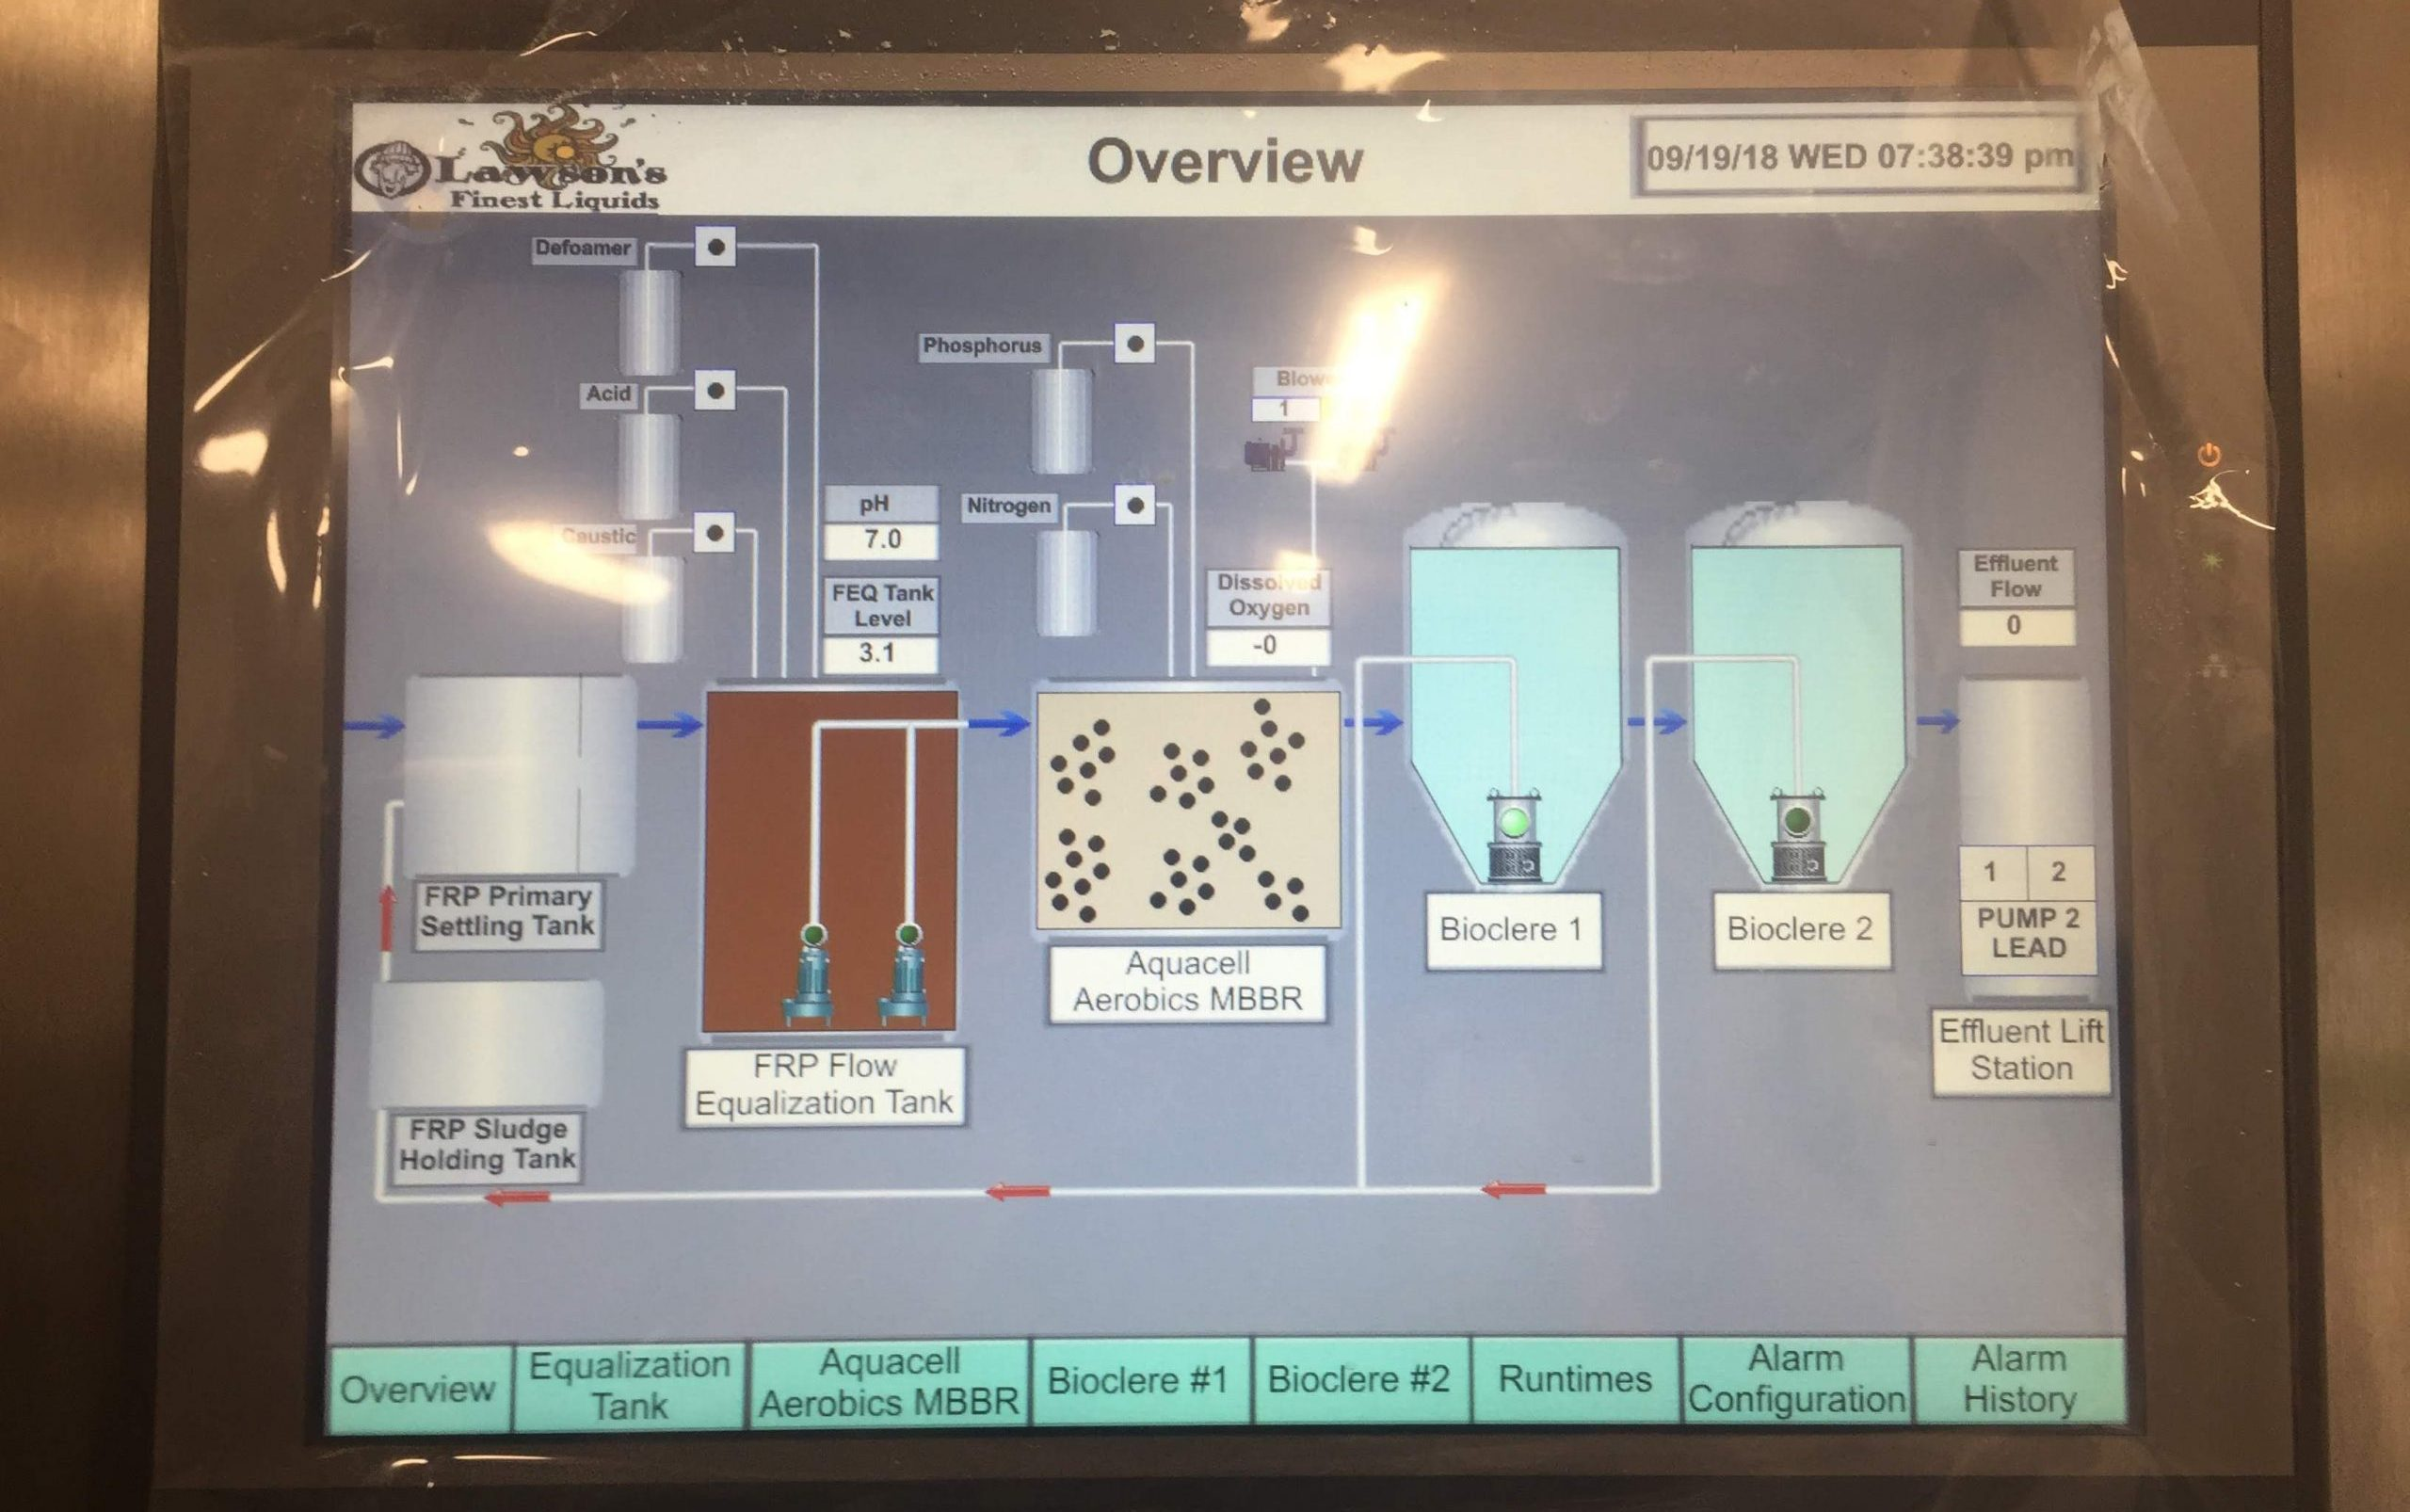 Wastewater Permitting and Pre-Treatment for Lawson's Finest Liquids